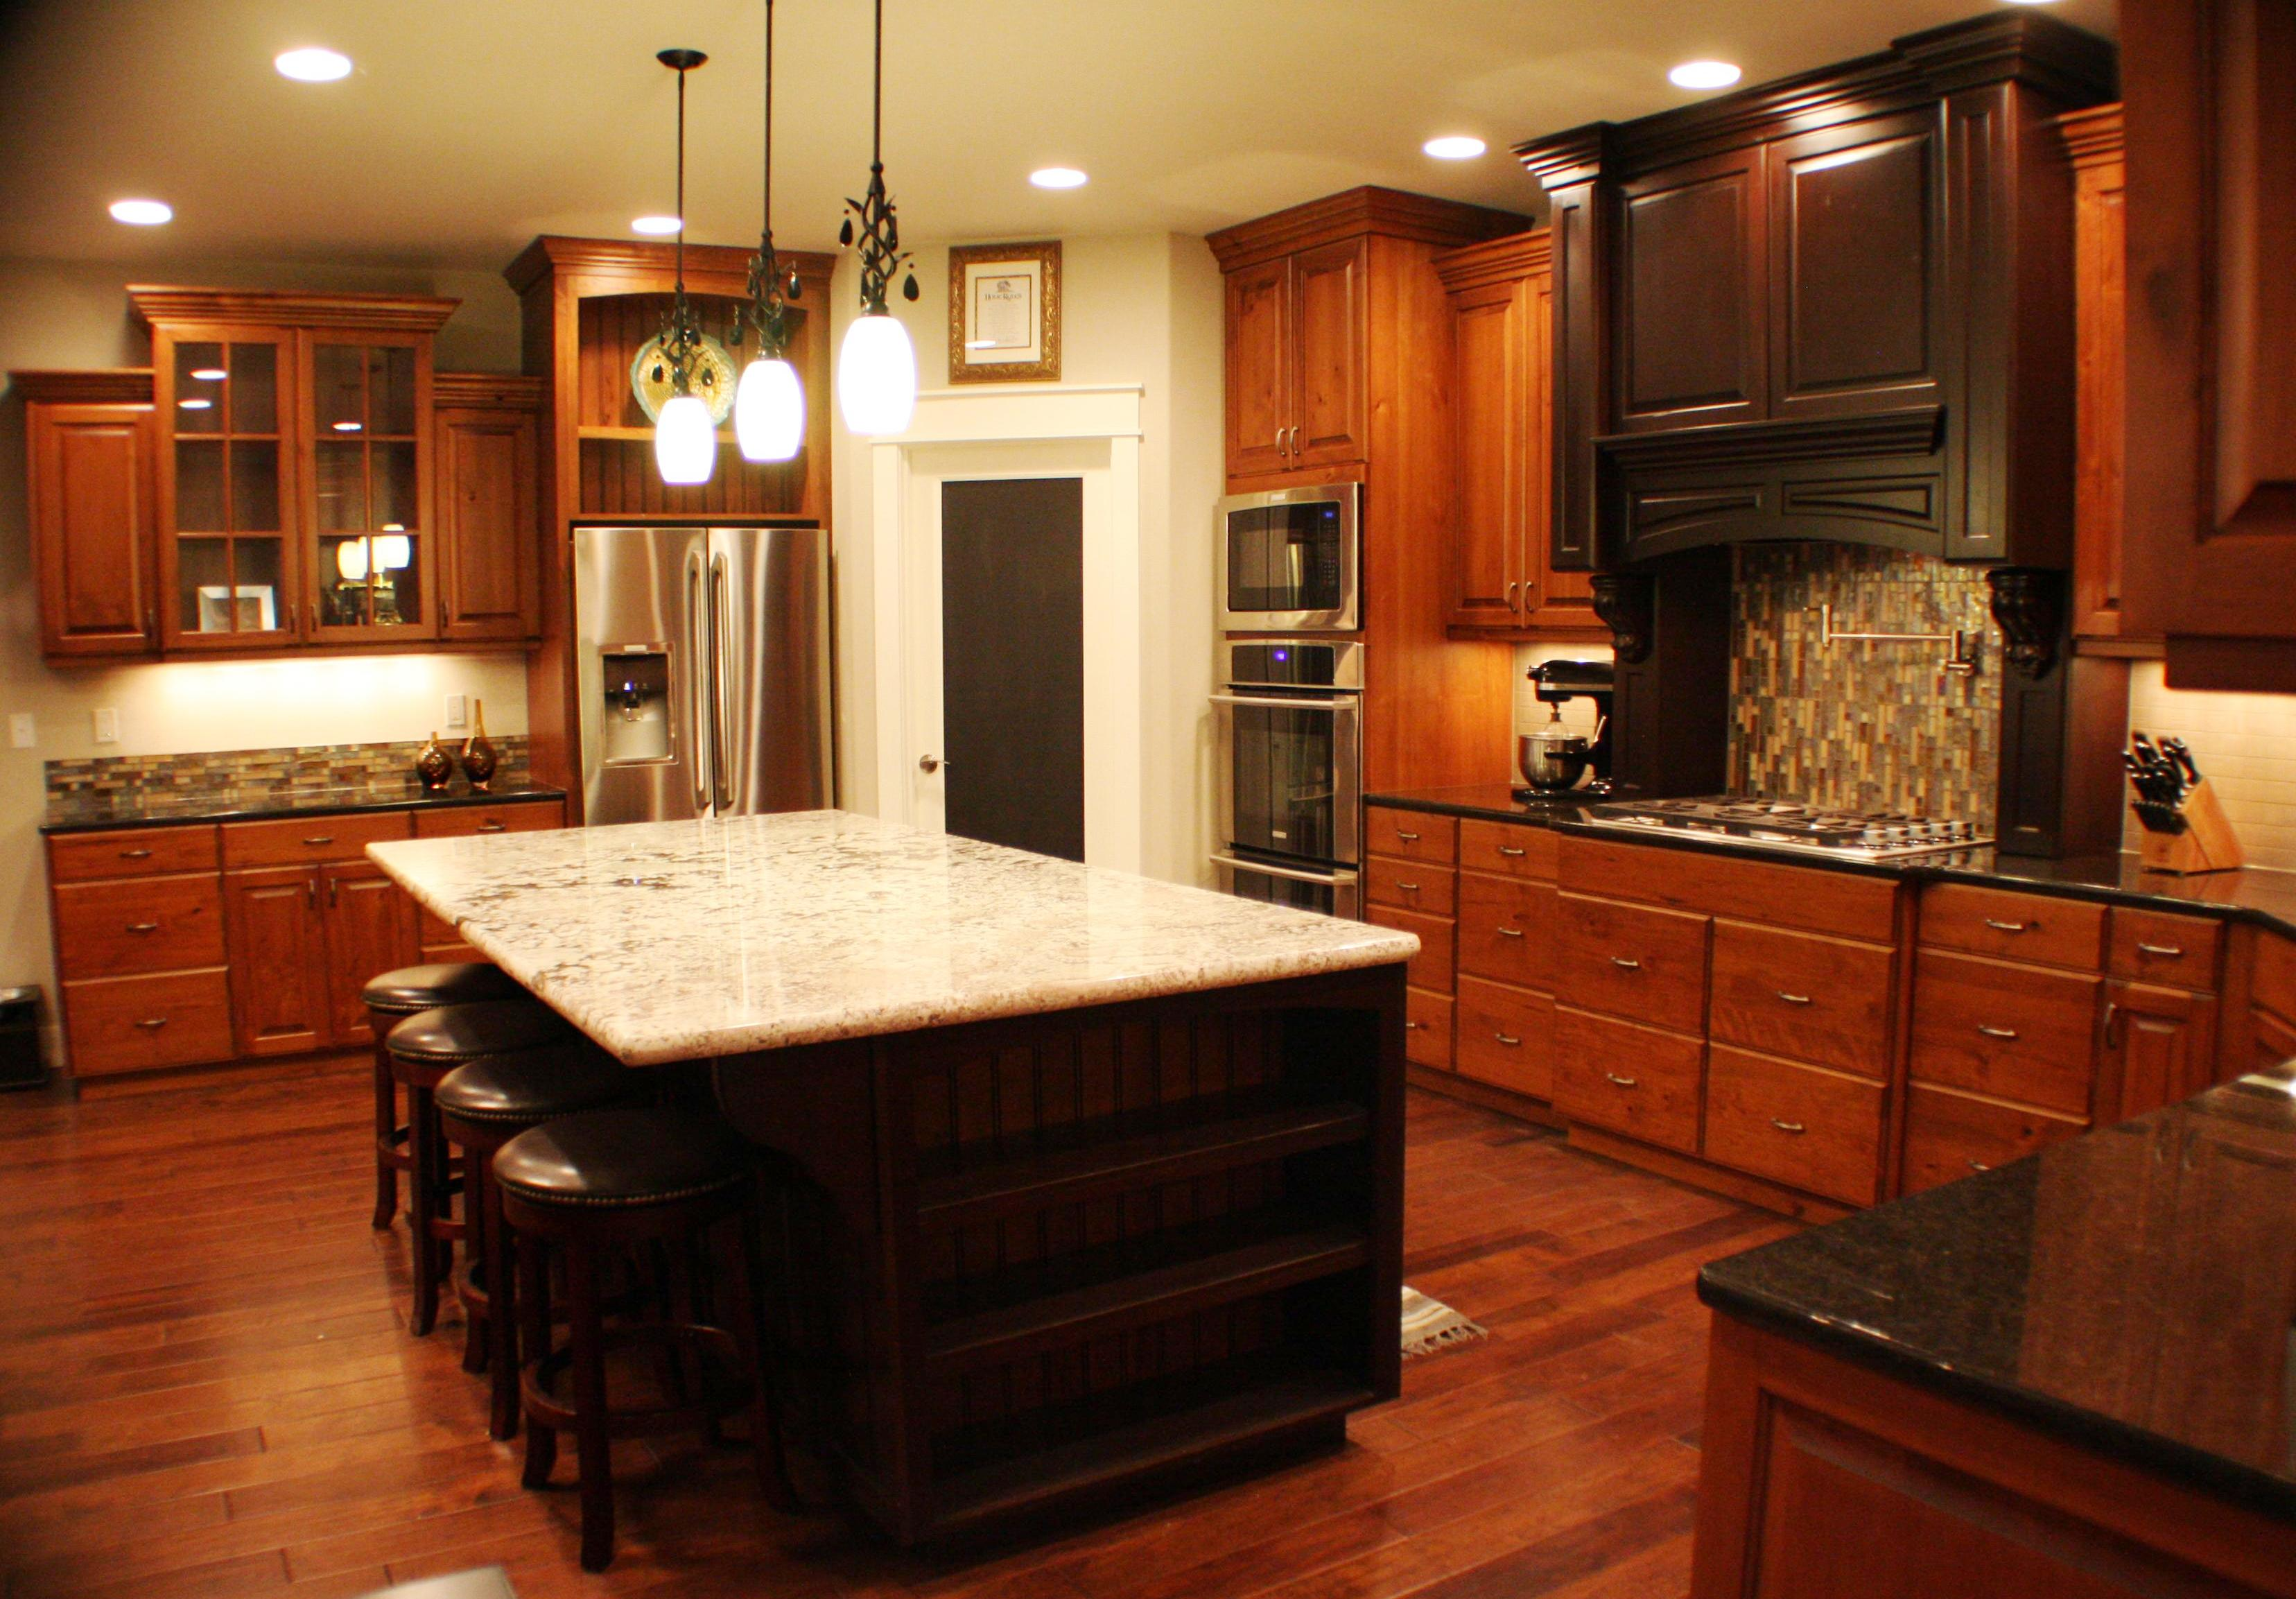 Custom cherry kitchen cabinets finished with Easy Oak colored stain